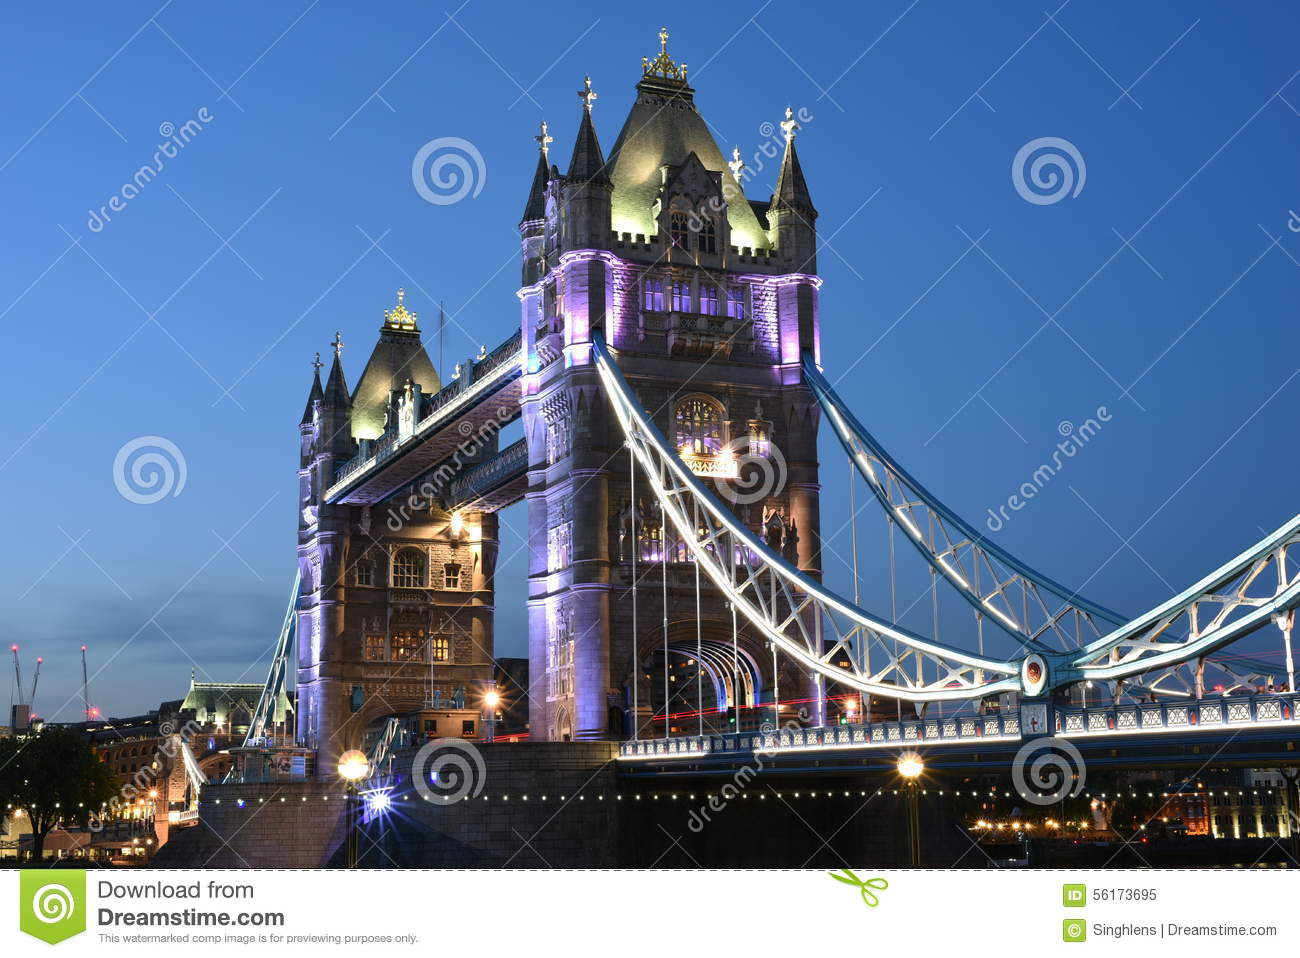 London UK, Majestic Tower Bridge at night with light trails of bus and cars, artistic long exposure night shot